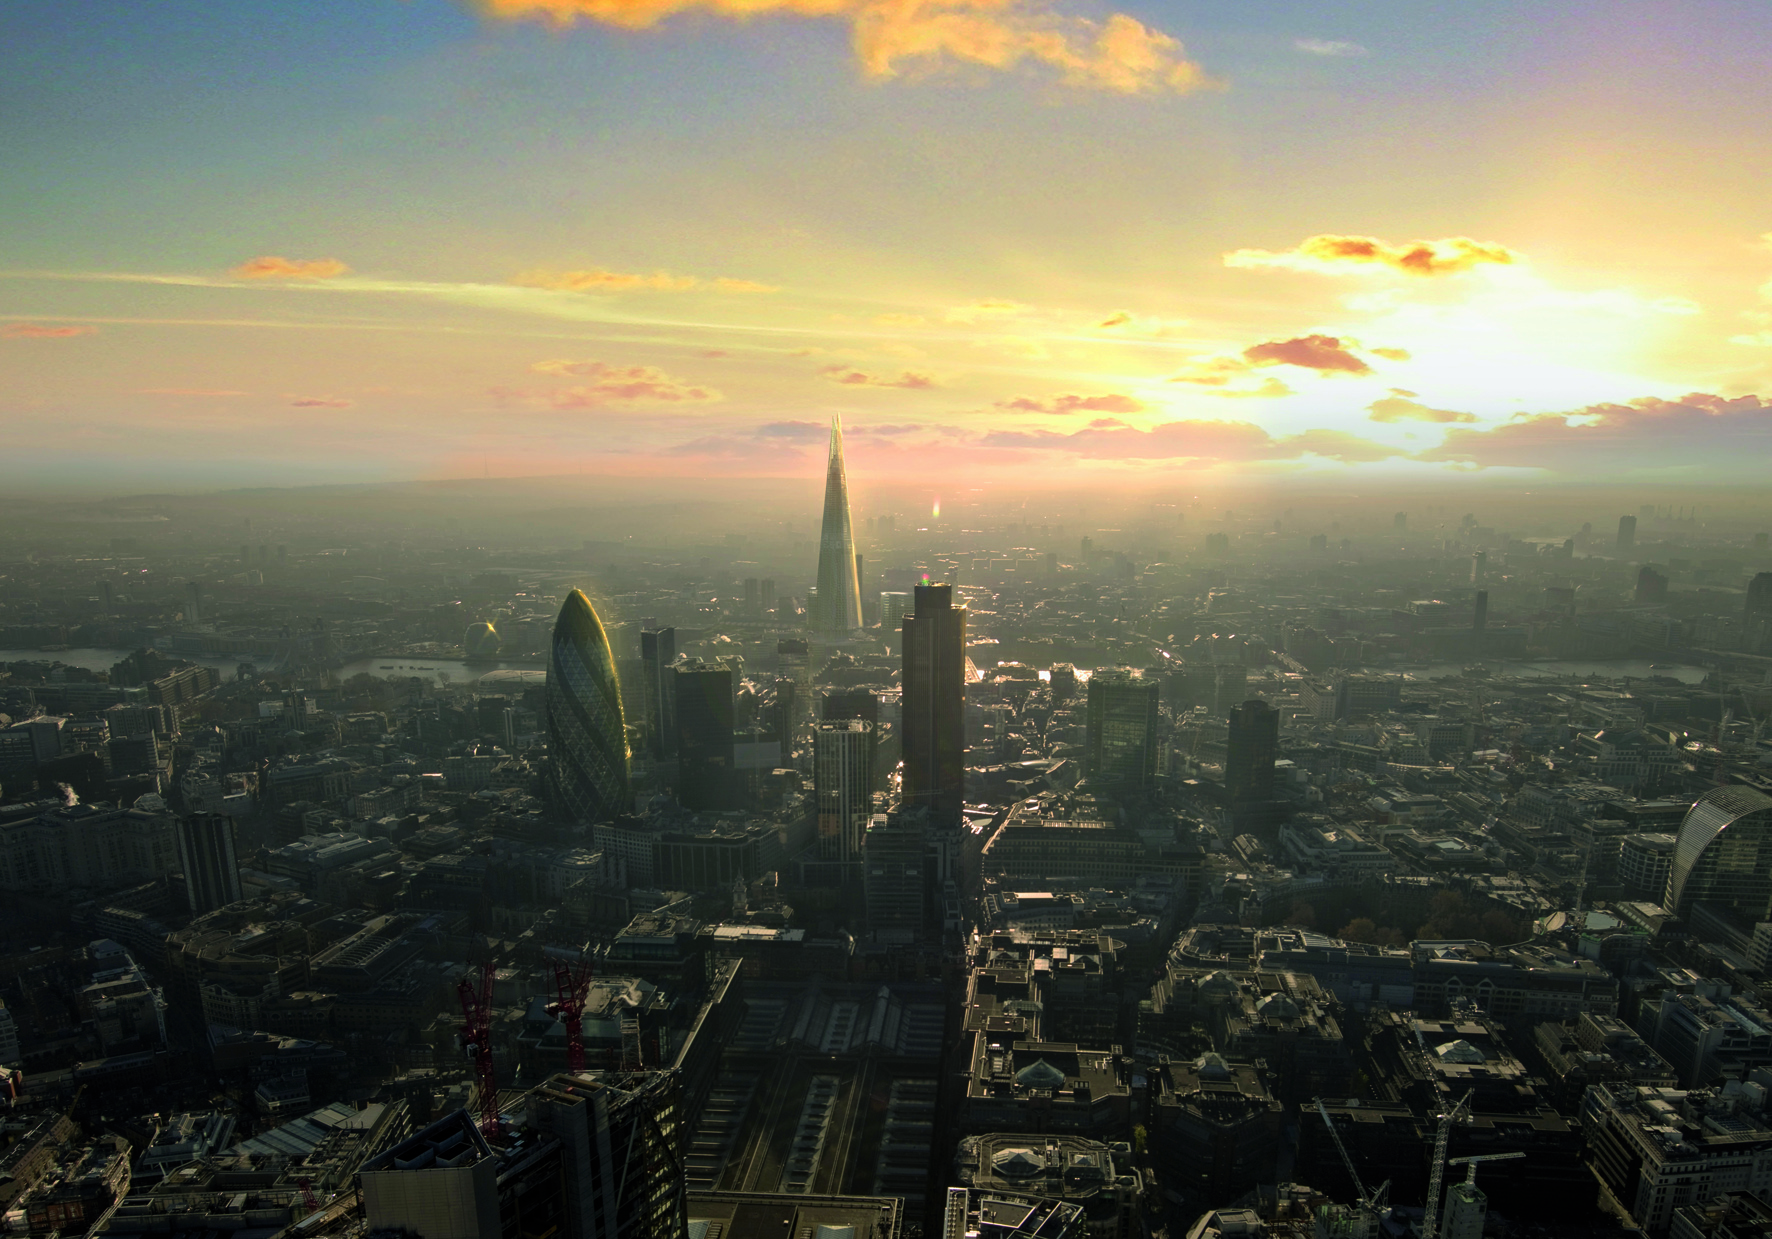 Shard_View33_City.jpg